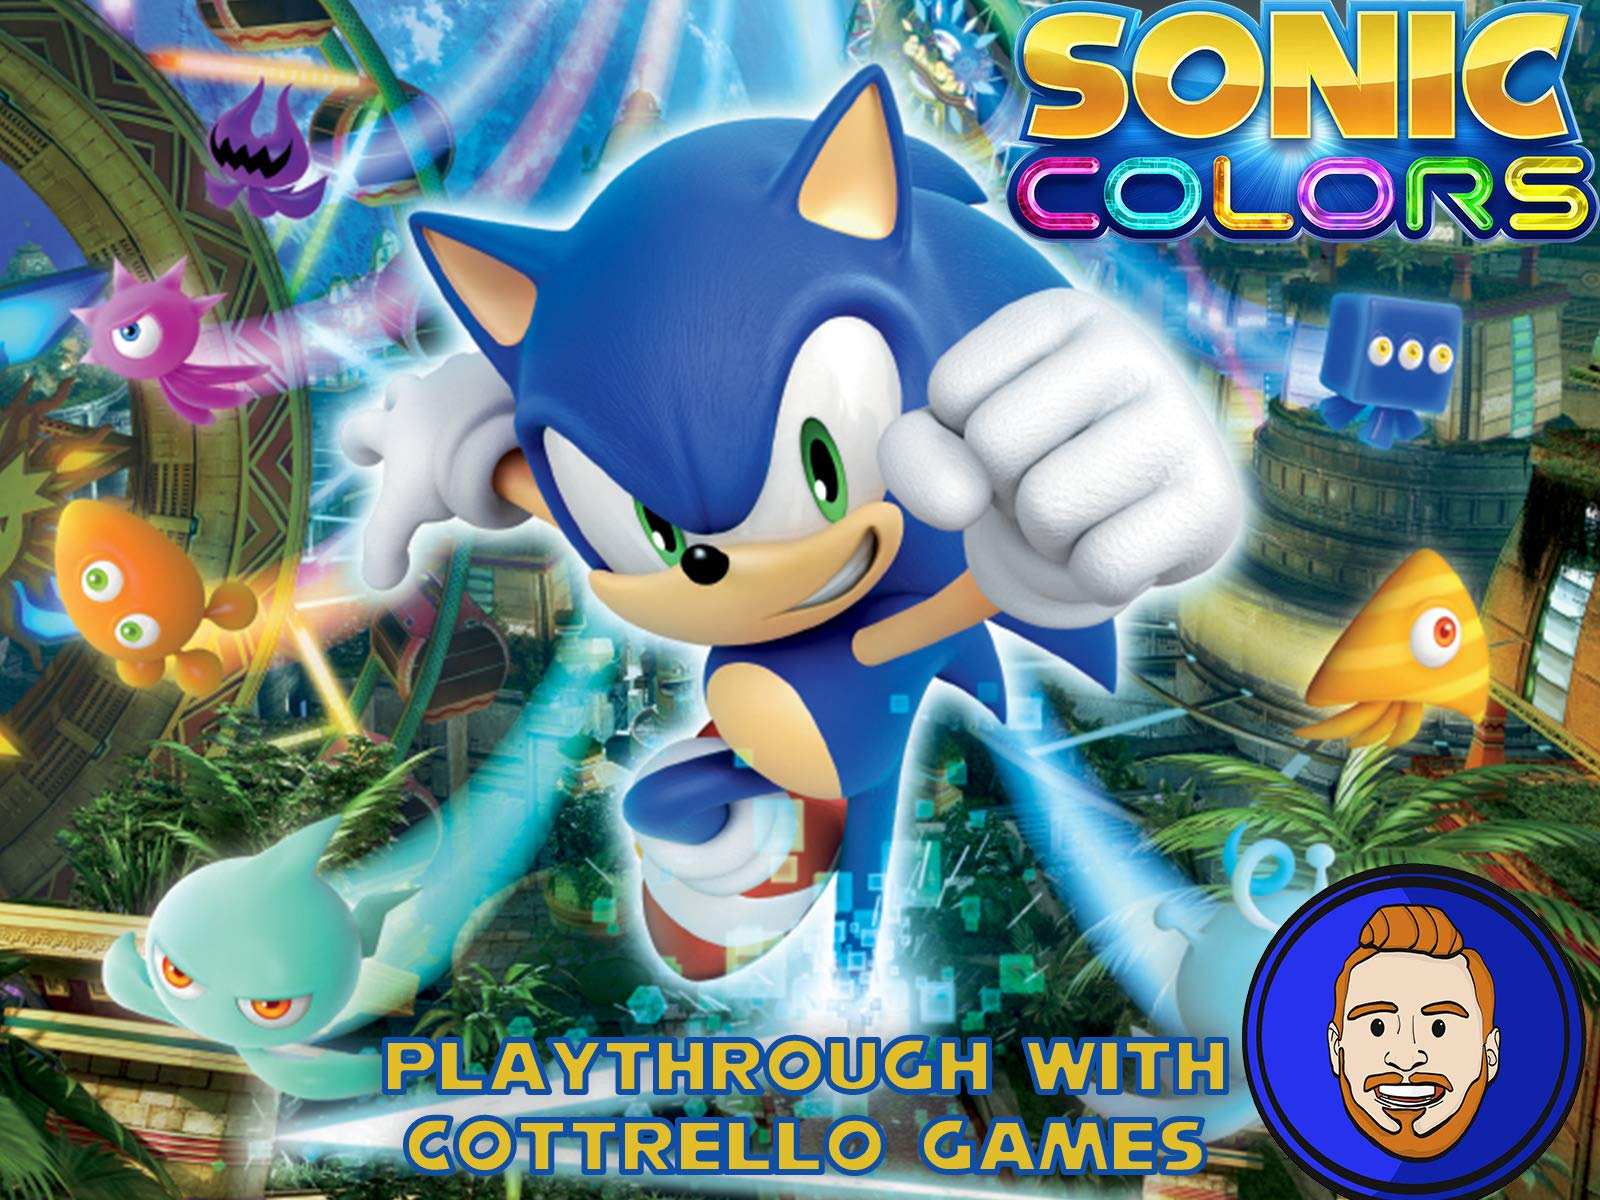 Sonic Colors Playthrough with Cottrello Games